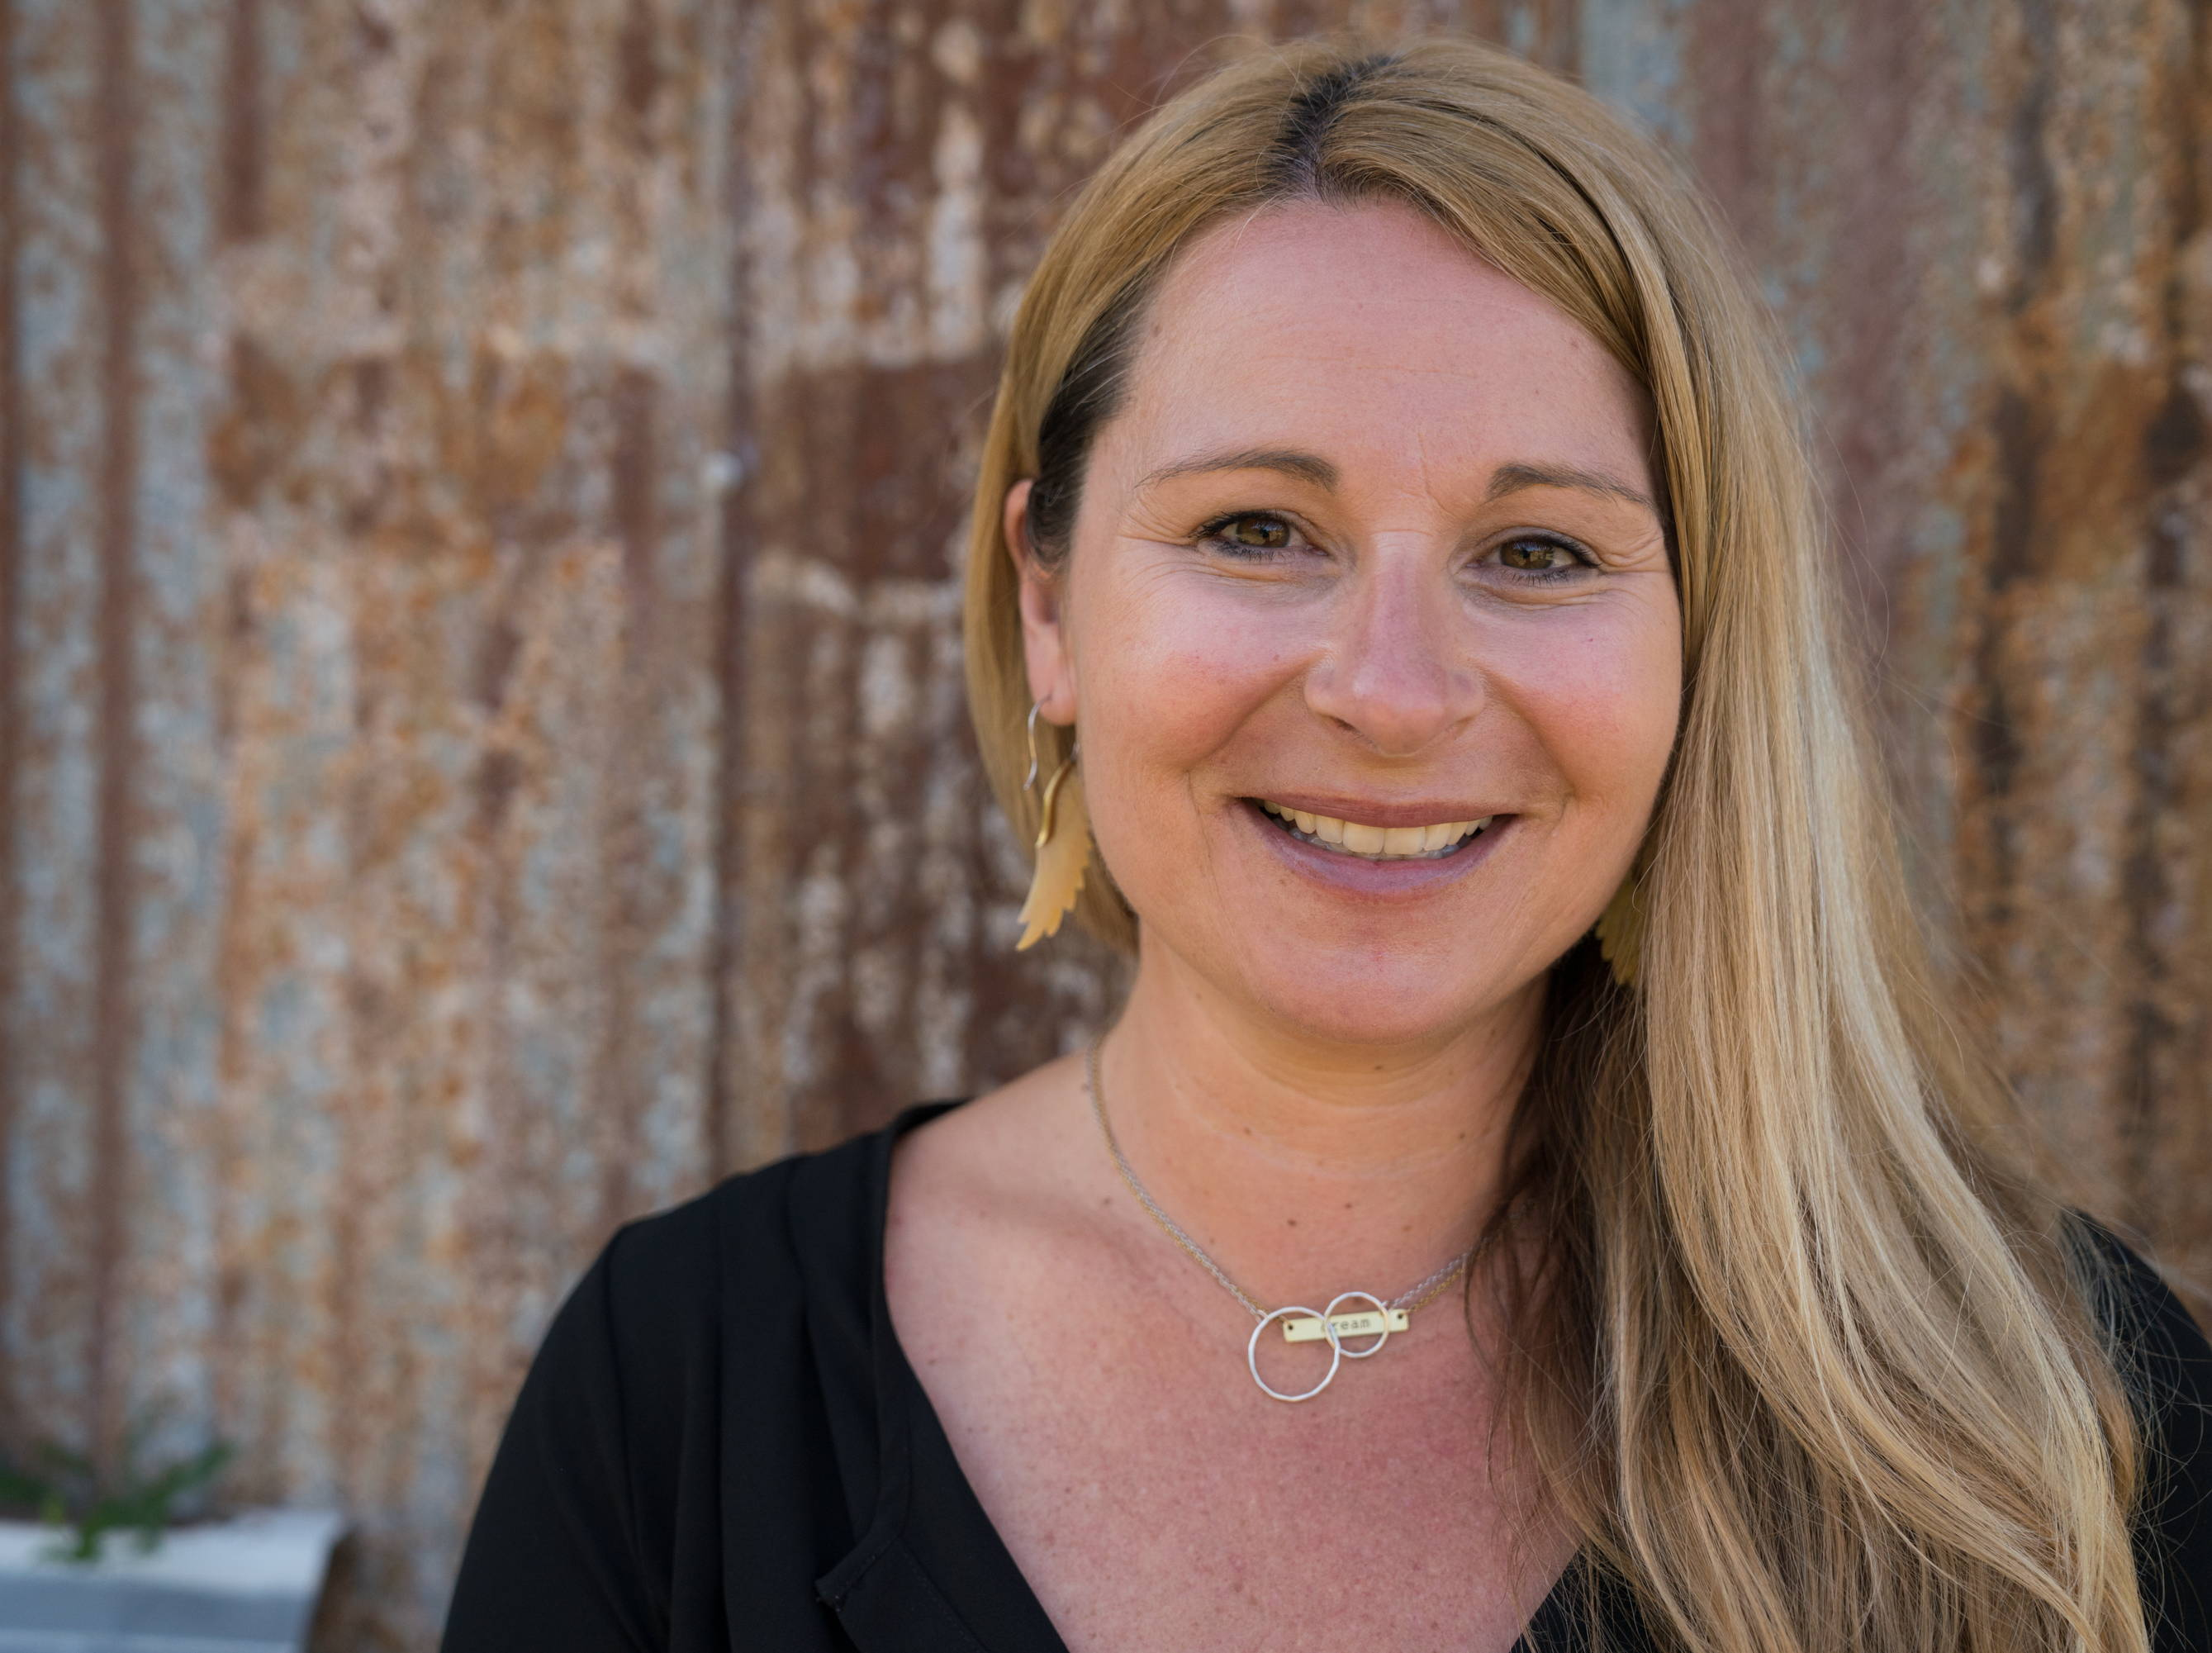 Jodi Scott, Co-Founder and CEO of Good Goo and Sierra Sage Herbs